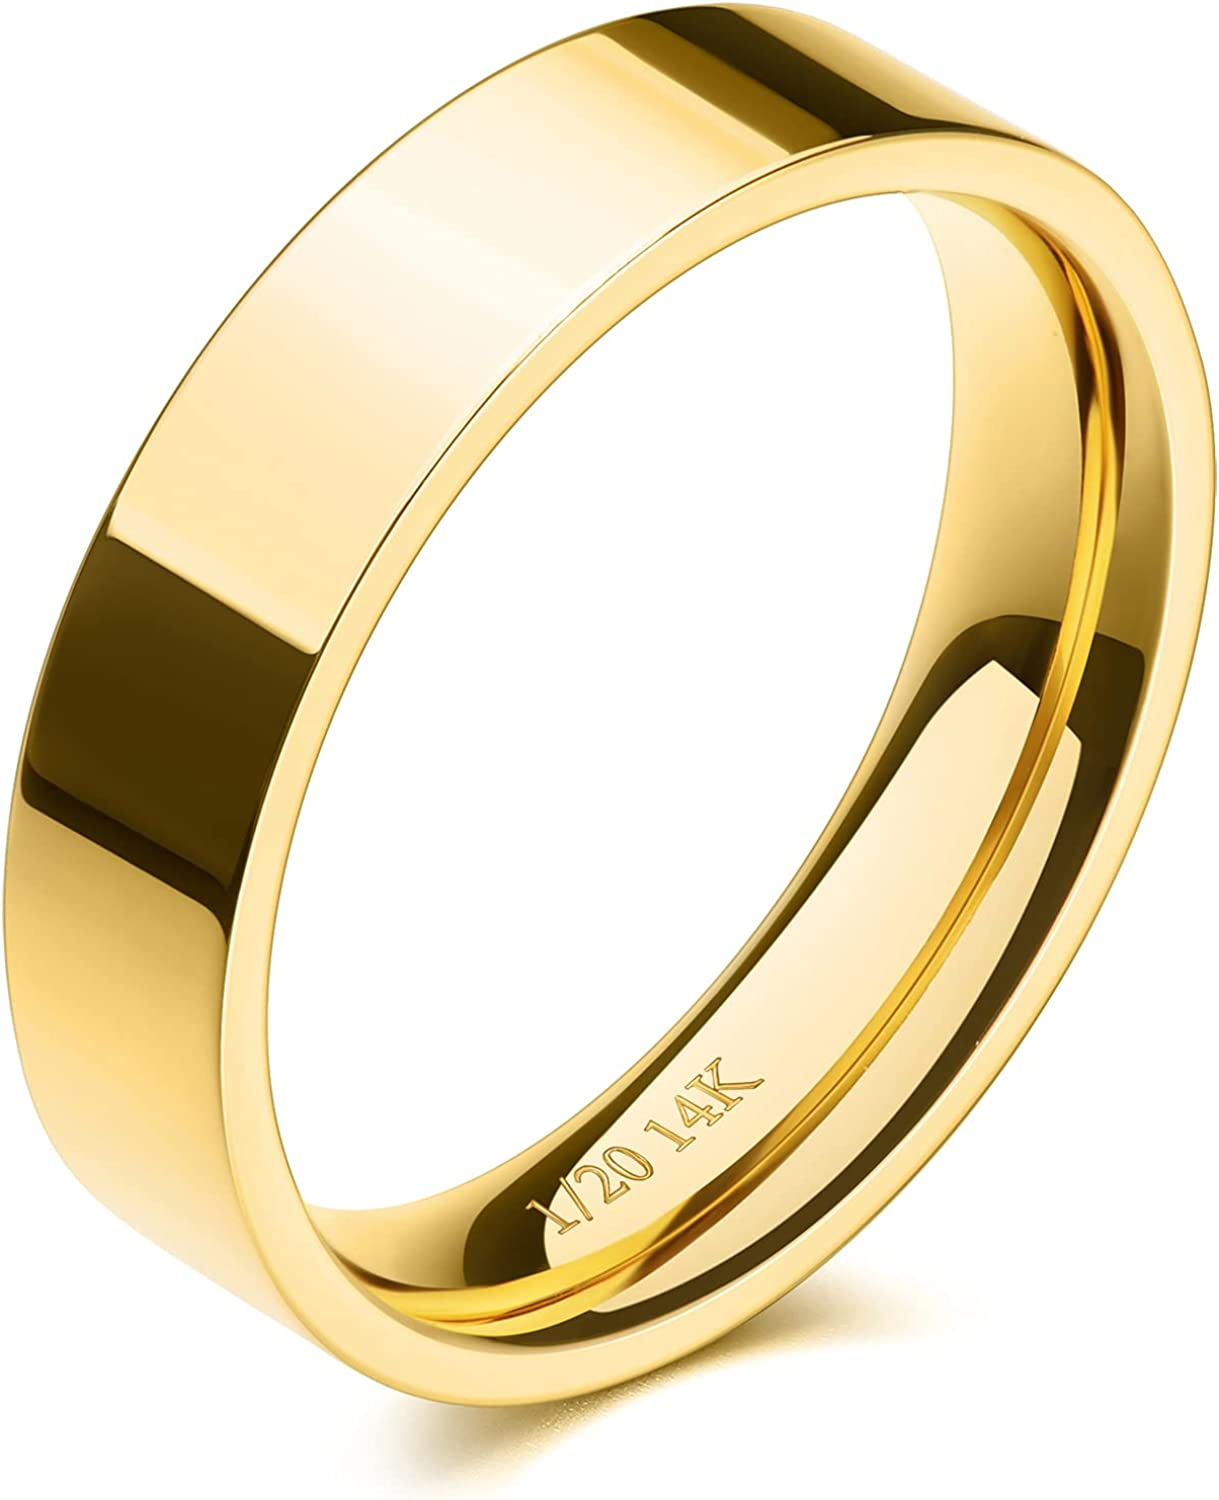 NOKMIT 5mm 14K Gold Filled Rings for Women Men Wedding Band Stacking Stackable Rings Pointer Finger Ring Plain Dome Comfort Fit Size 5 to 10